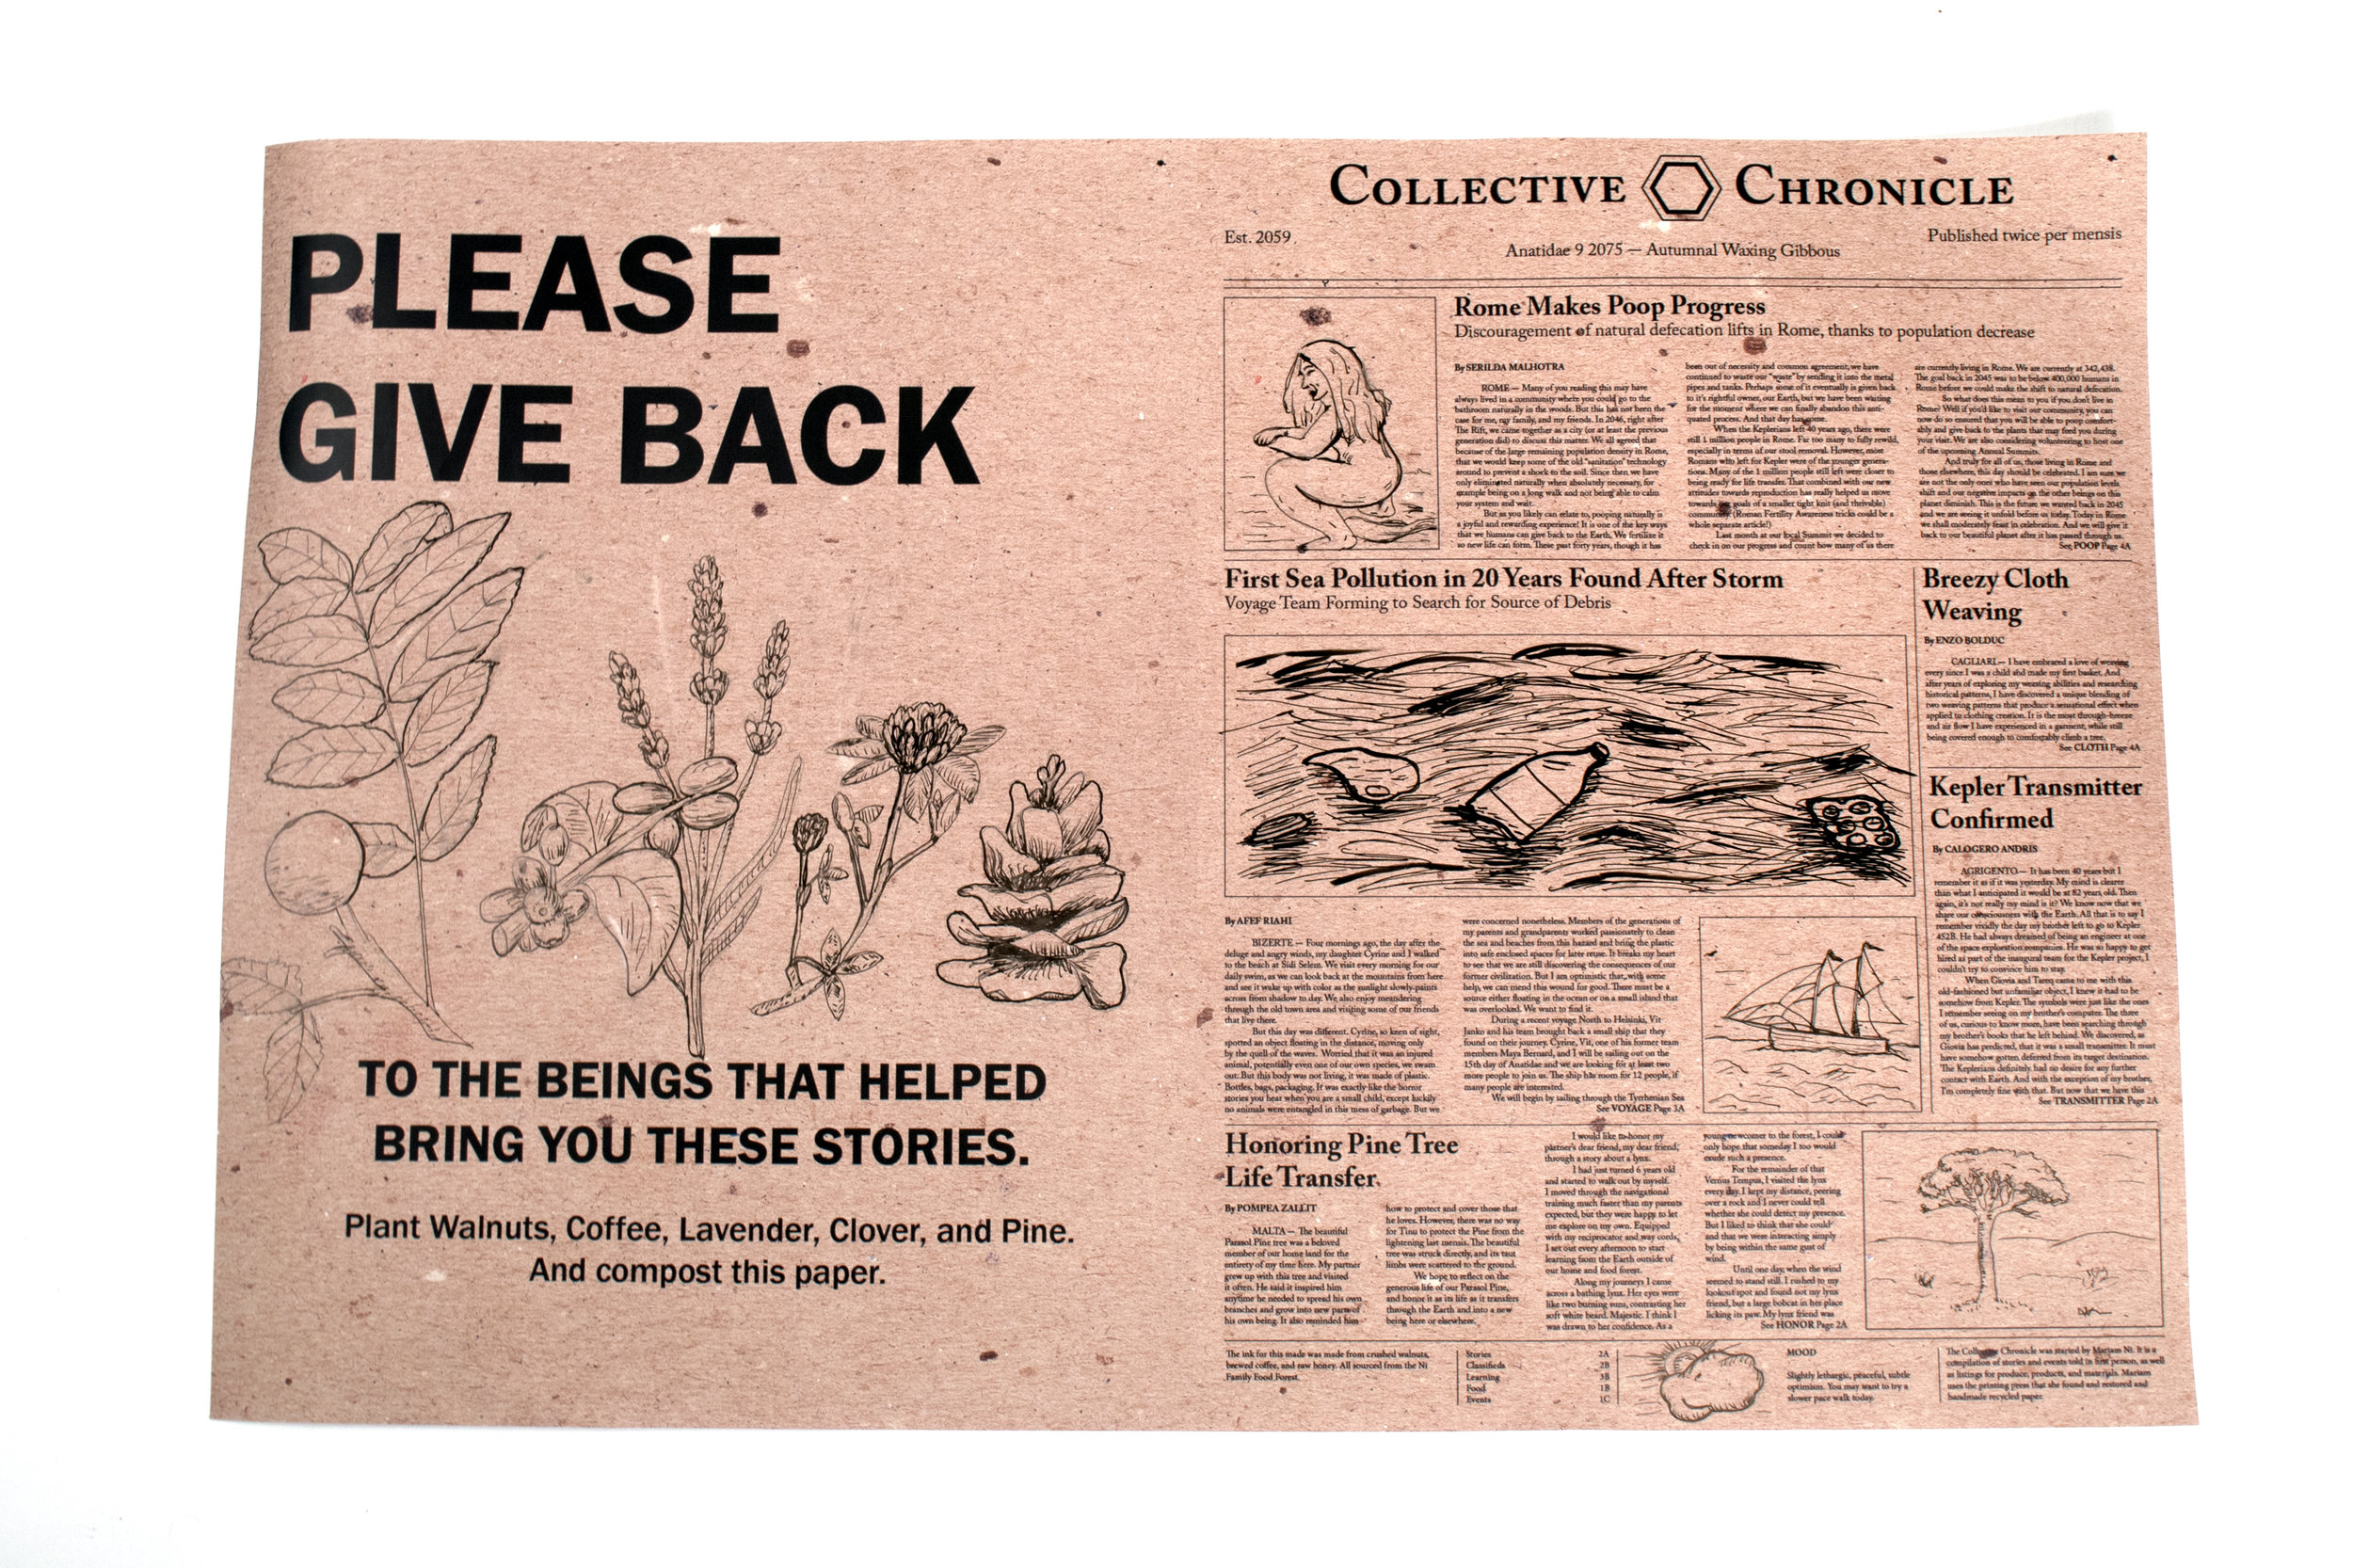 Speculative future newspaper